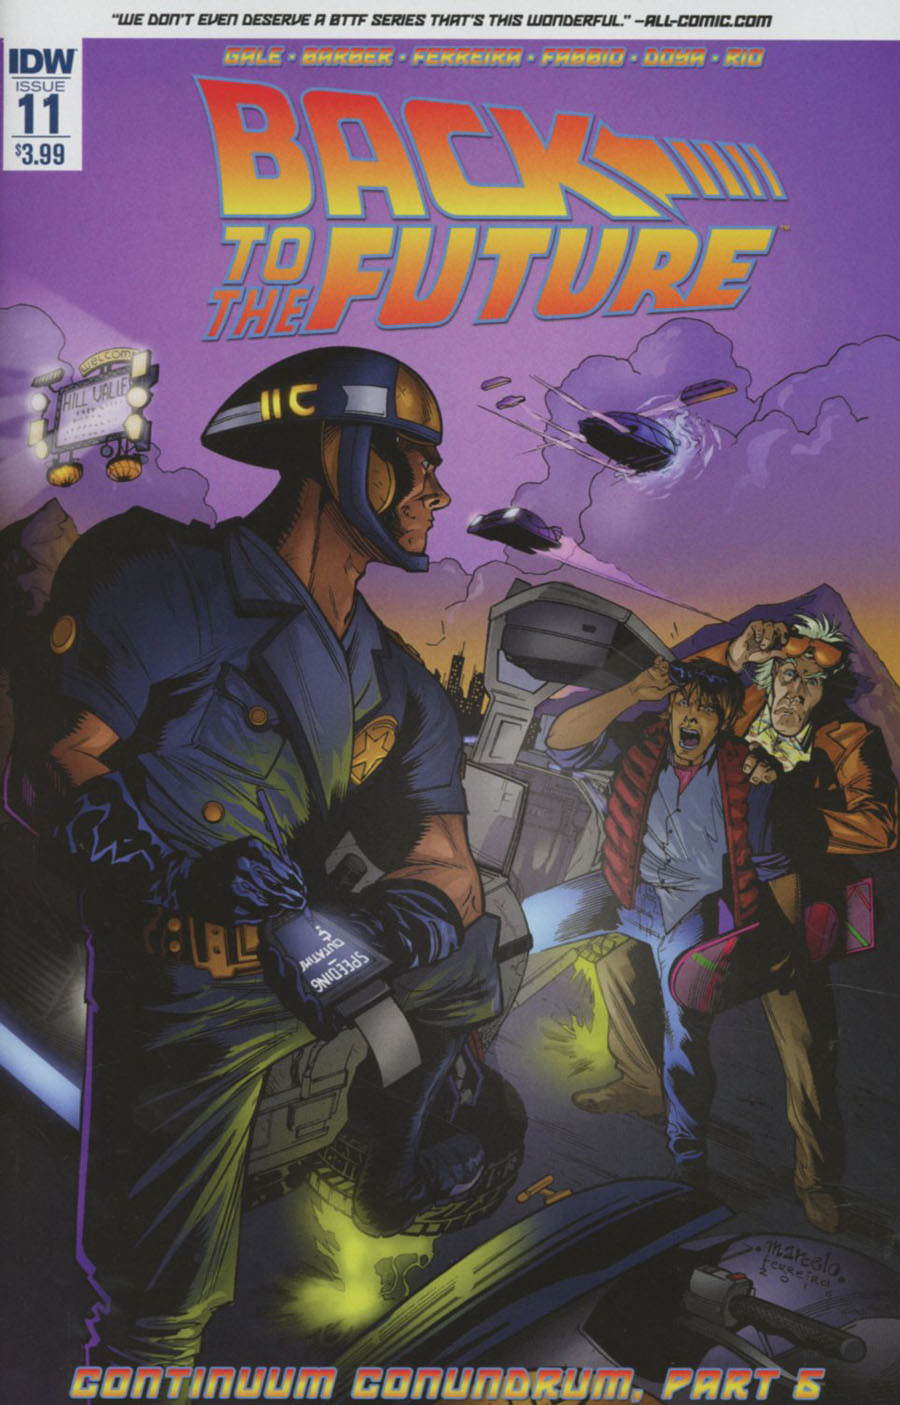 Back To The Future Vol 2 #11 Cover A Regular Marcelo Ferreira Cover